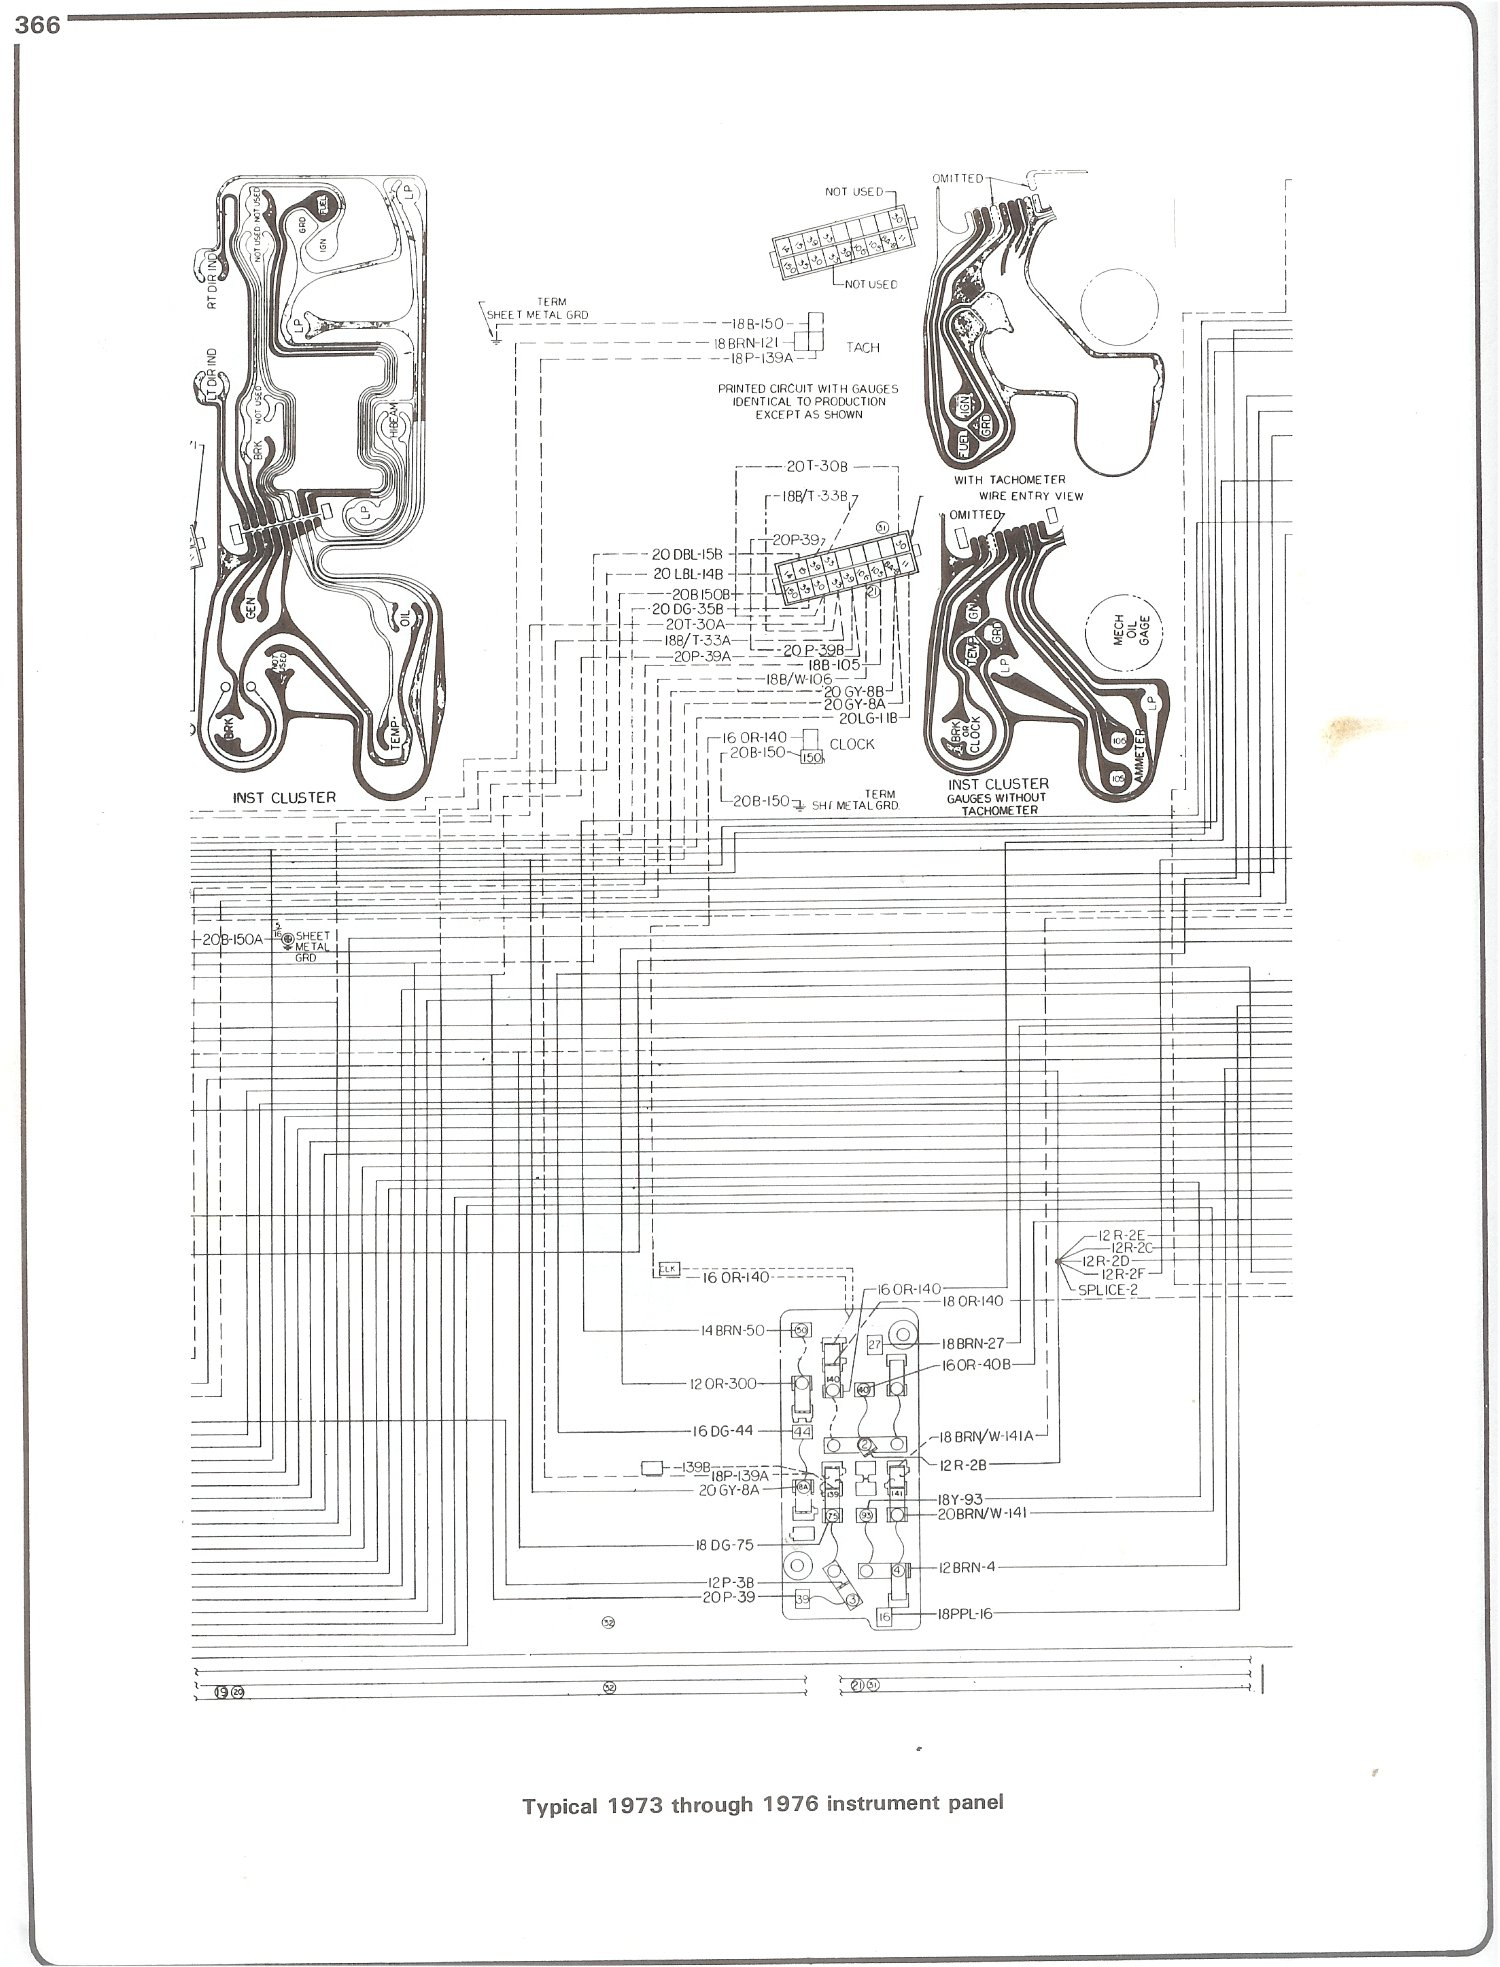 Chevy Truck Wiring Diagram Model C